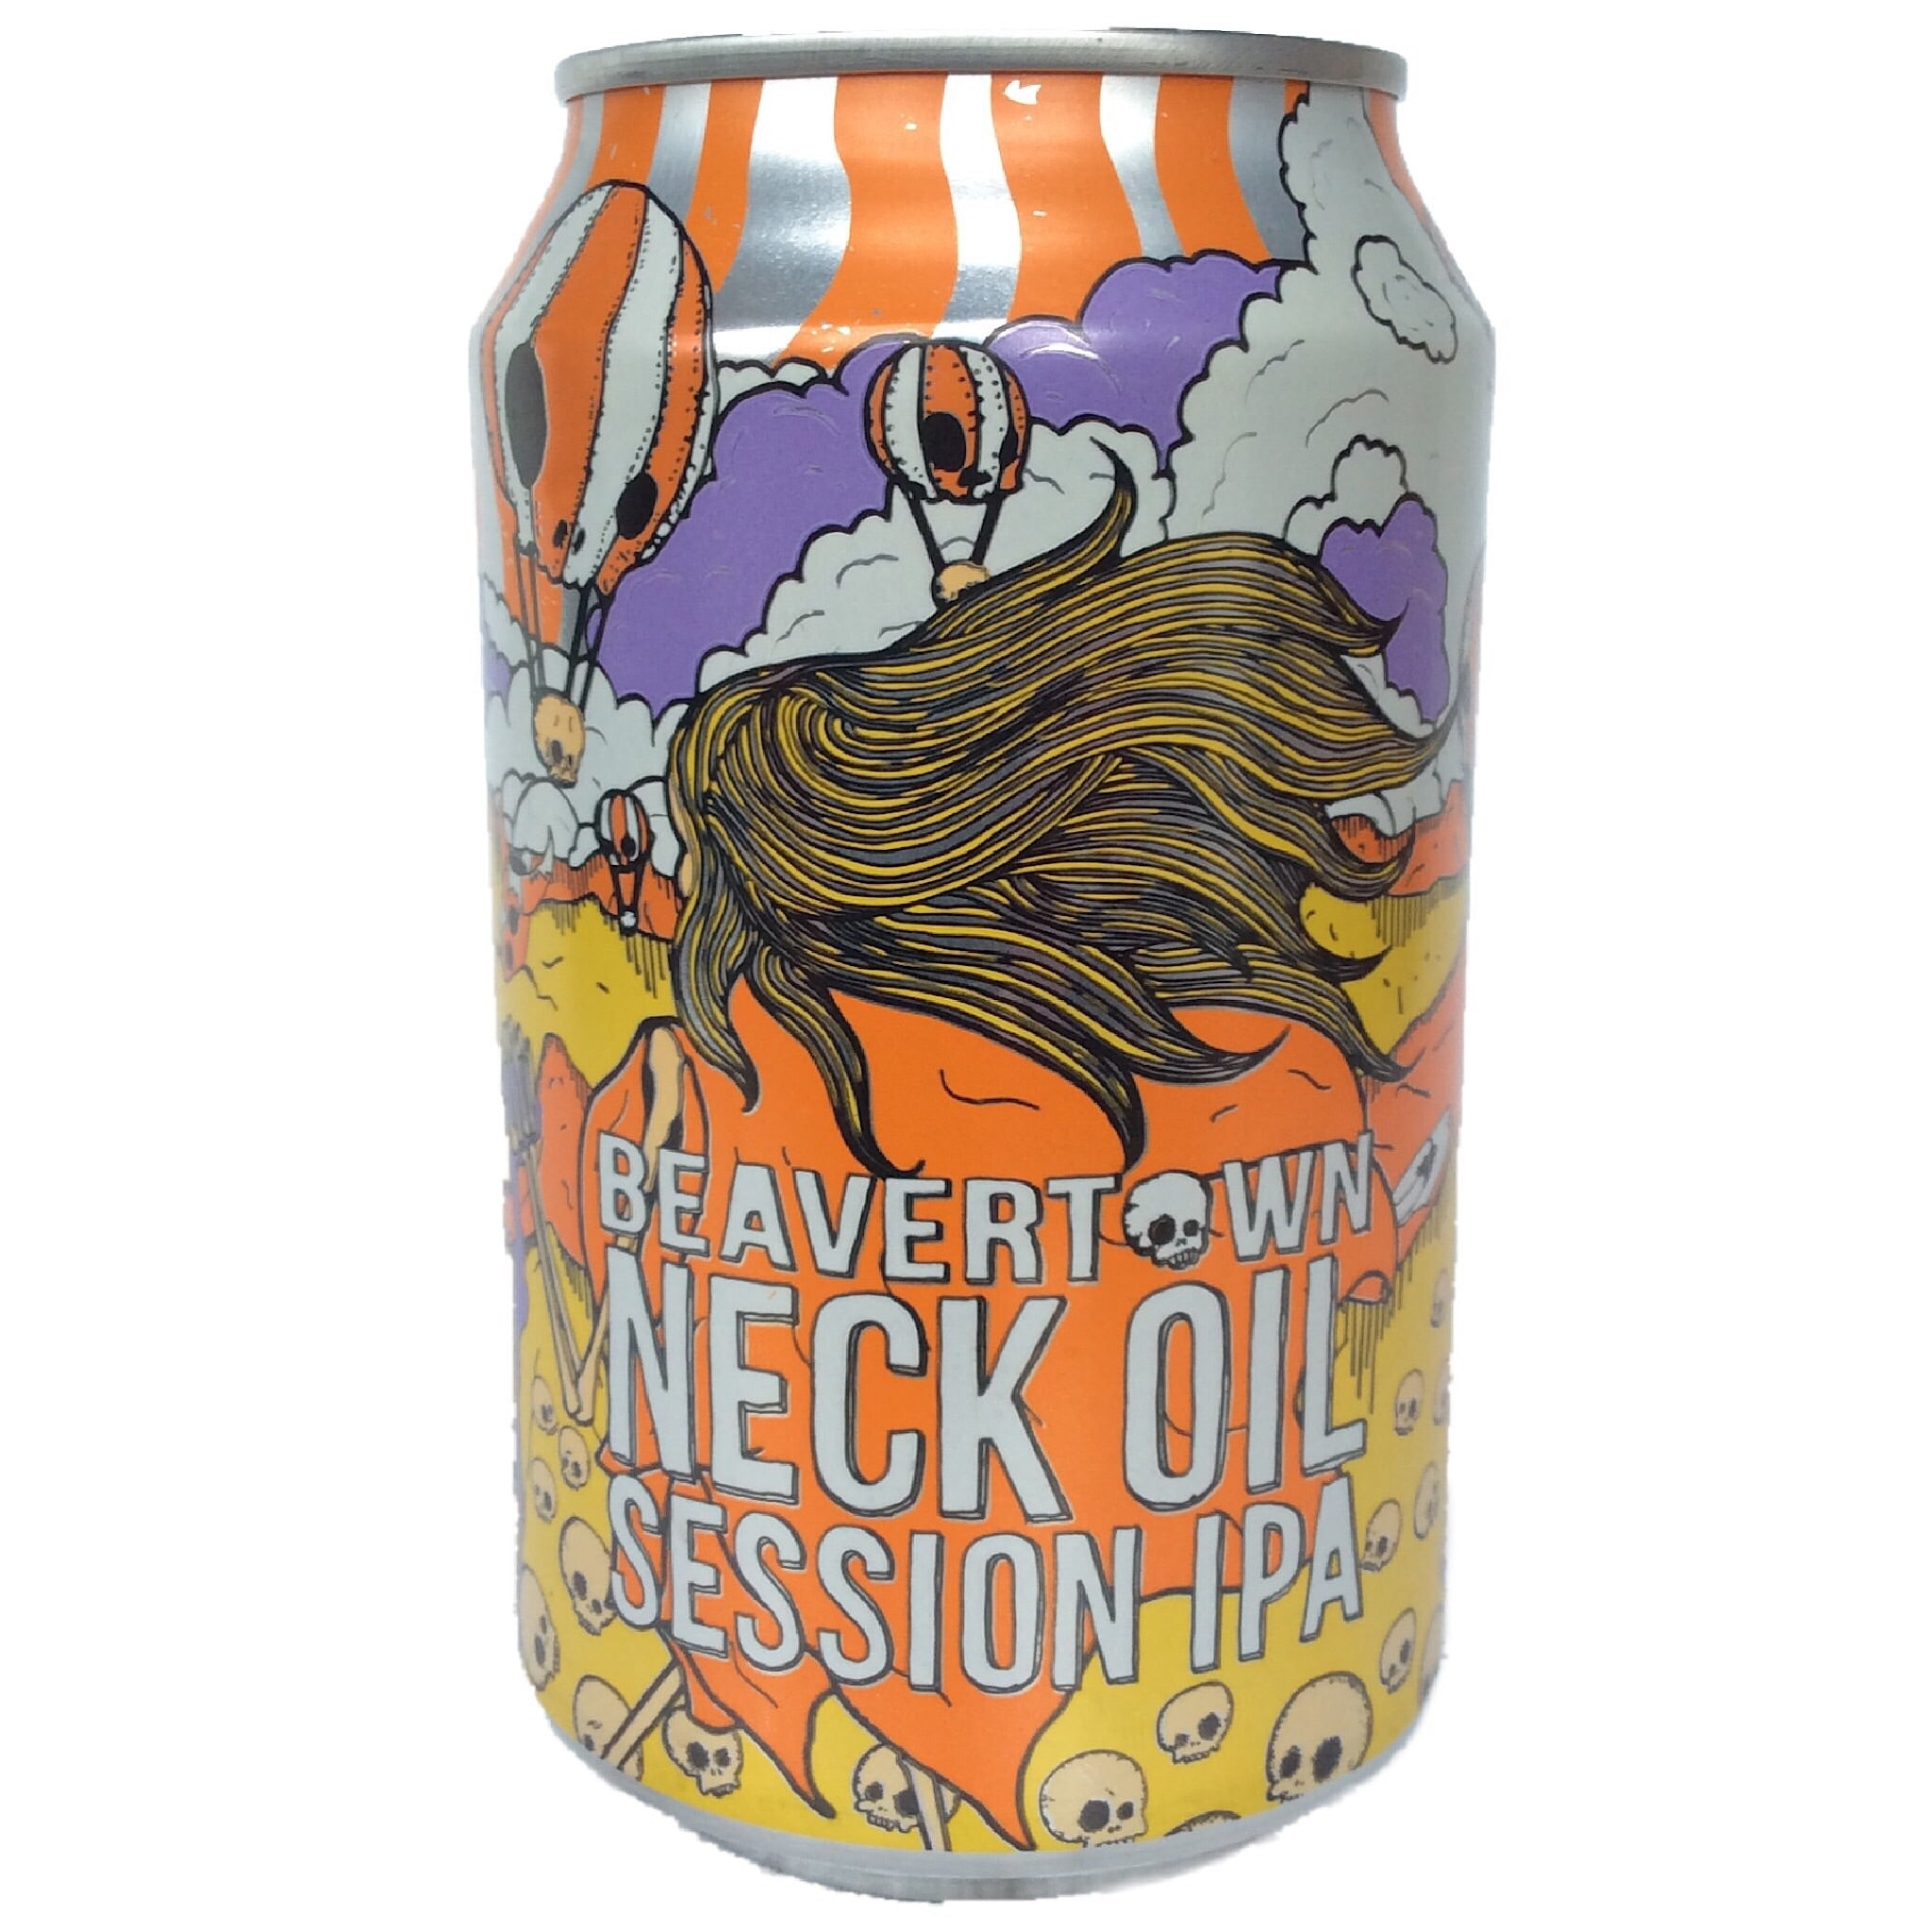 Beavertown Neck Oil Session IPA 4.3% (330ml Can)-Hop Burns & Black